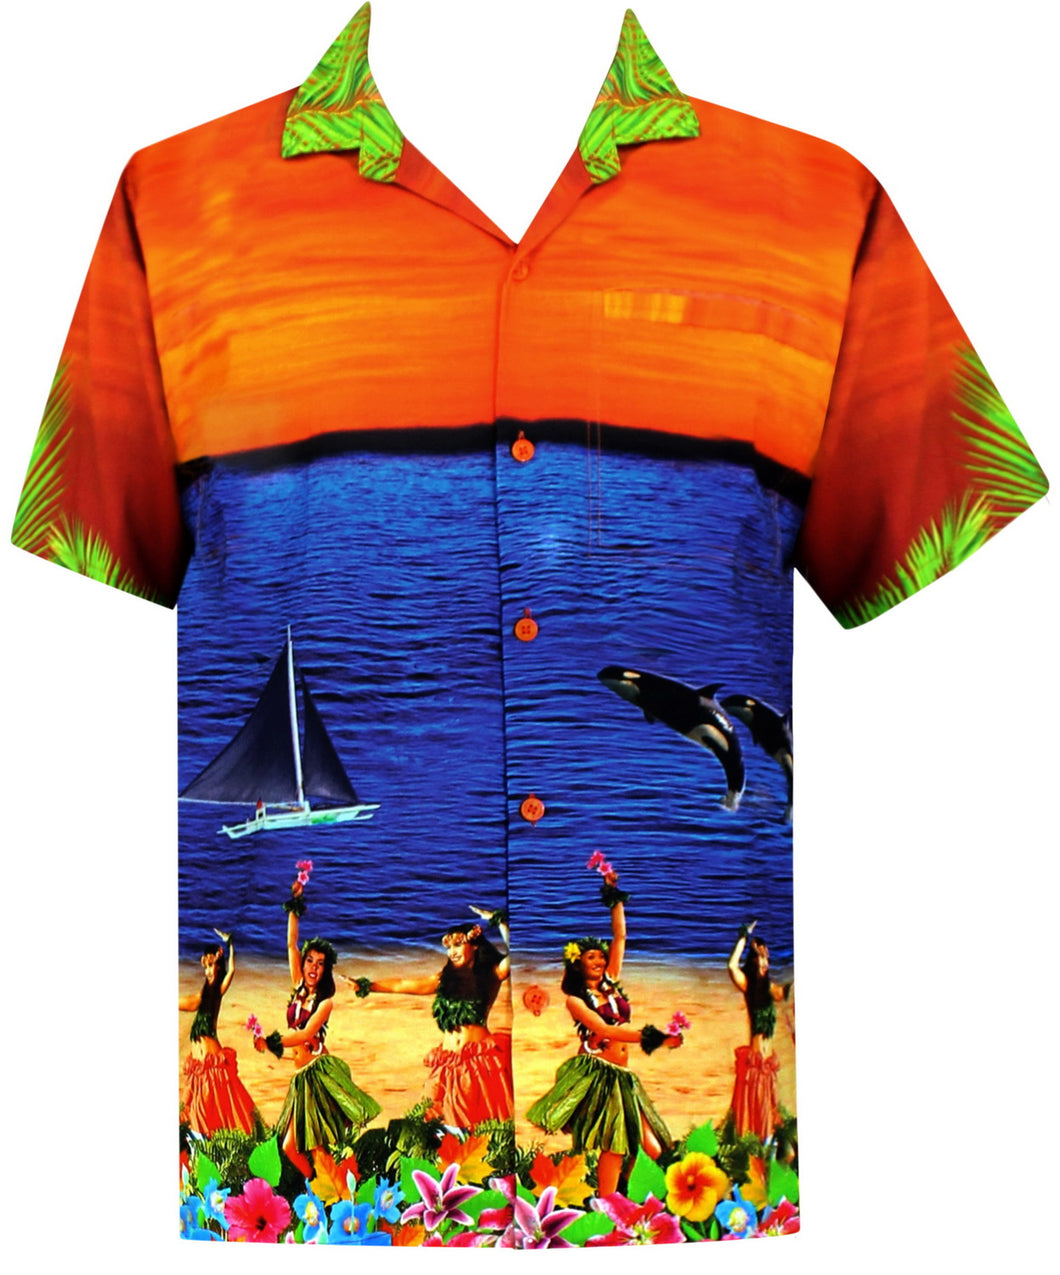 LA LEELA Men Regular Size Beach hawaiian Shirt Aloha Tropical Beach front Pocket Short sleeve Orange